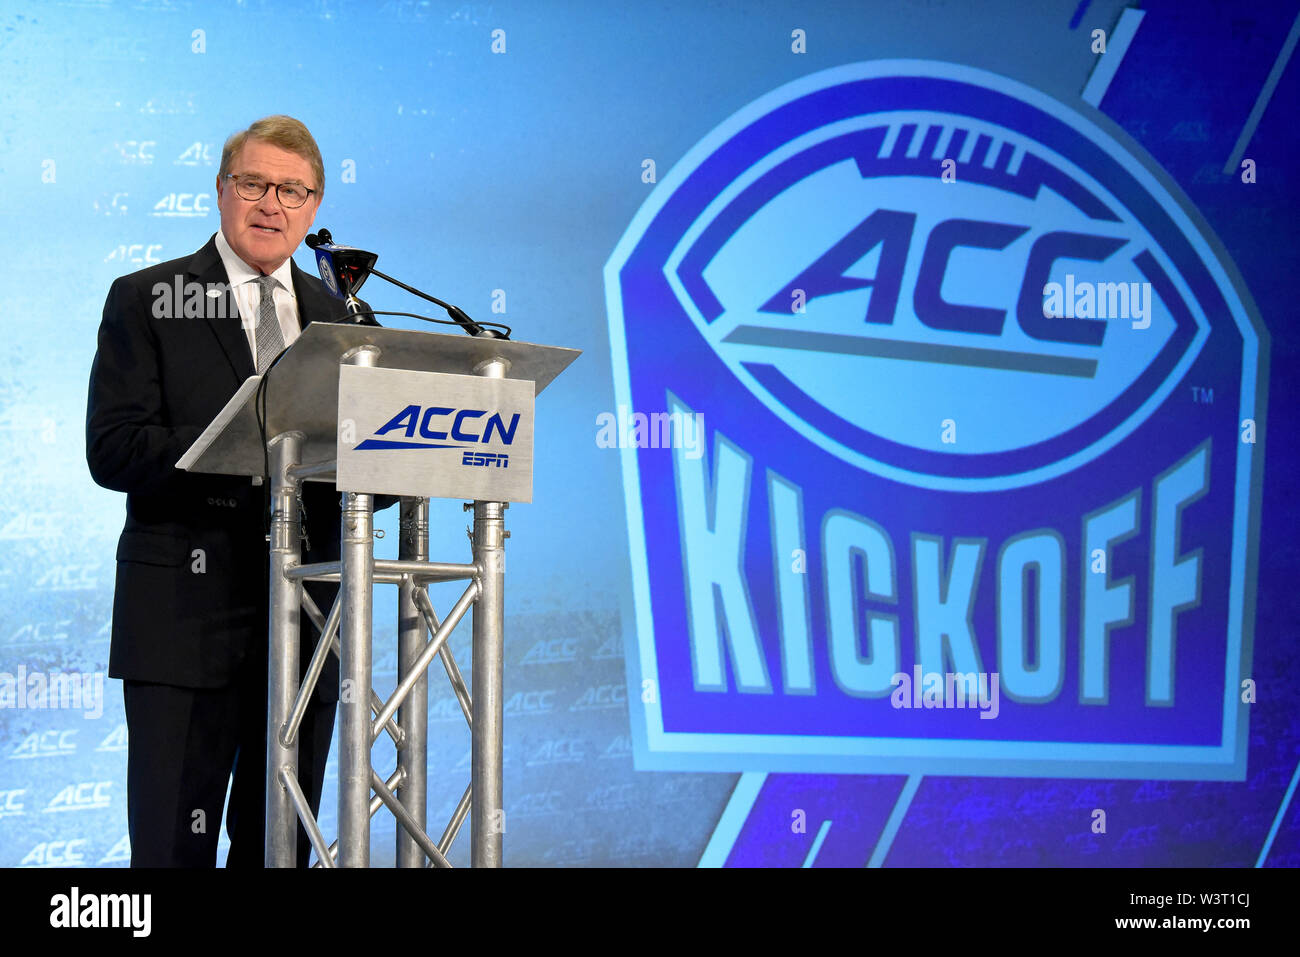 July 17, 2019 - Charlotte, North Carolina, U.S - ACC Commissioner John Swofford, speaking during the Commissioners forum at the ACC Football Kickoff on July 17, 2019 at the Westin Hotels & Resorts in Charlotte, N.C. (Credit Image: © Ed Clemente/ZUMA Wire) - Stock Image